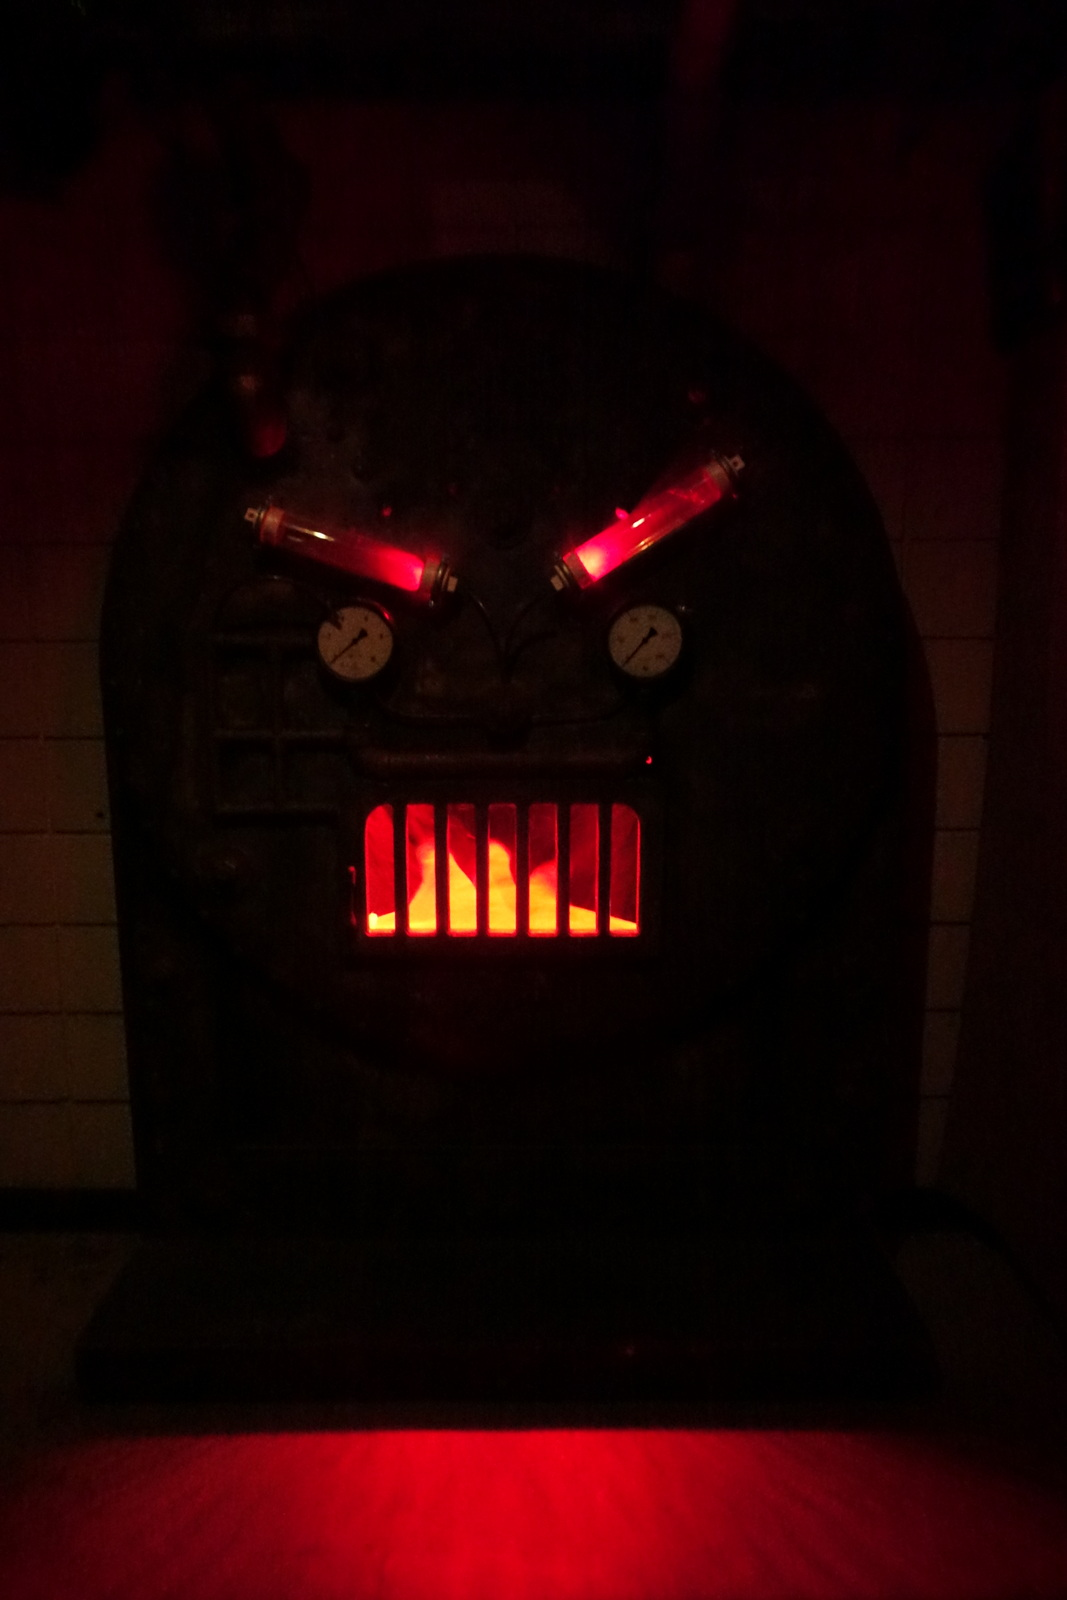 After stopping to observe a few rooms, you walk down a hallway to approach this furnace face.